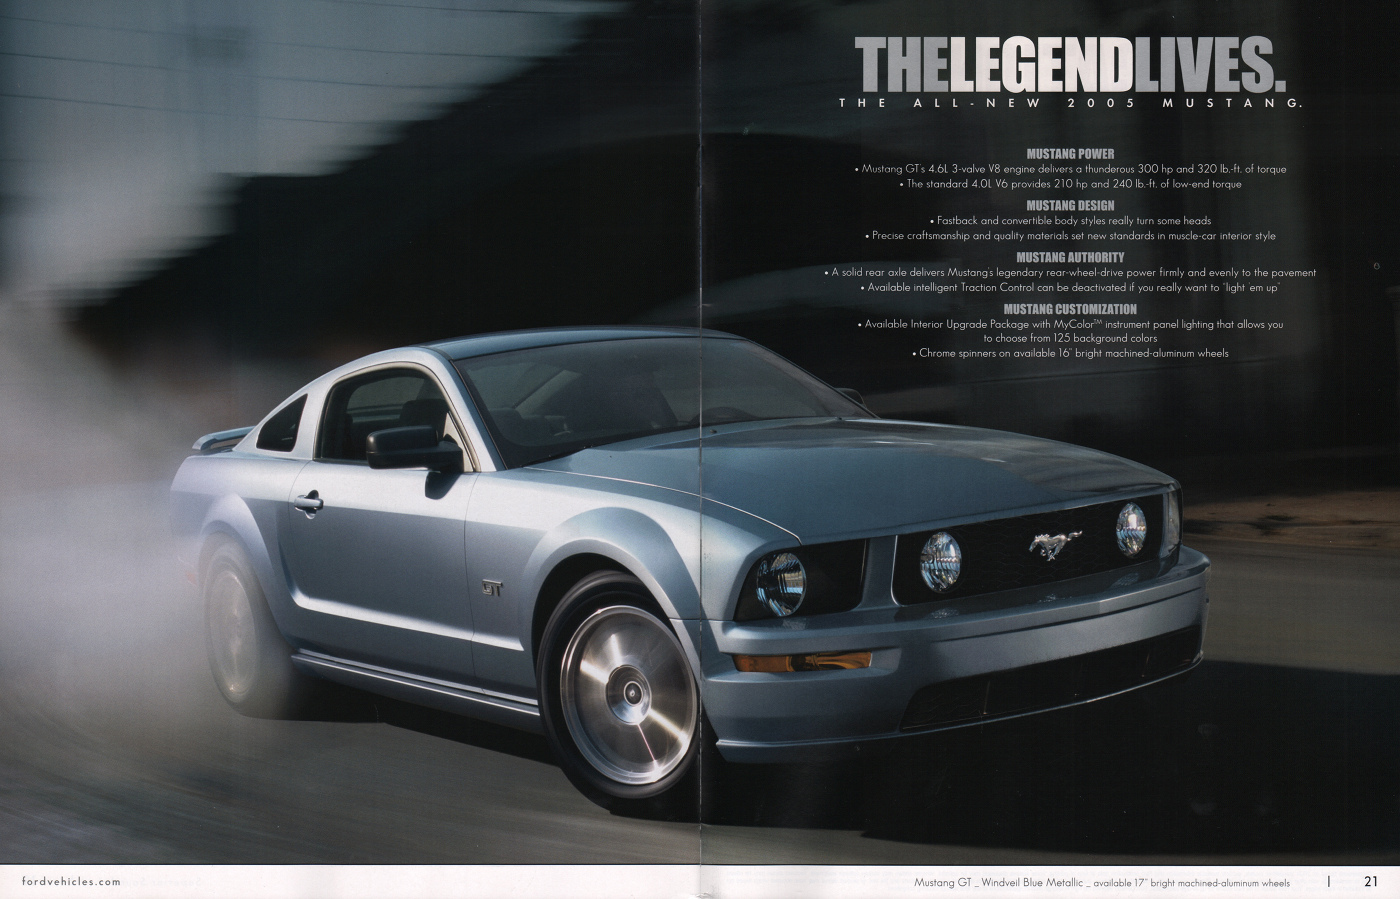 Windveil Blue 2005 Mustang GT coupe